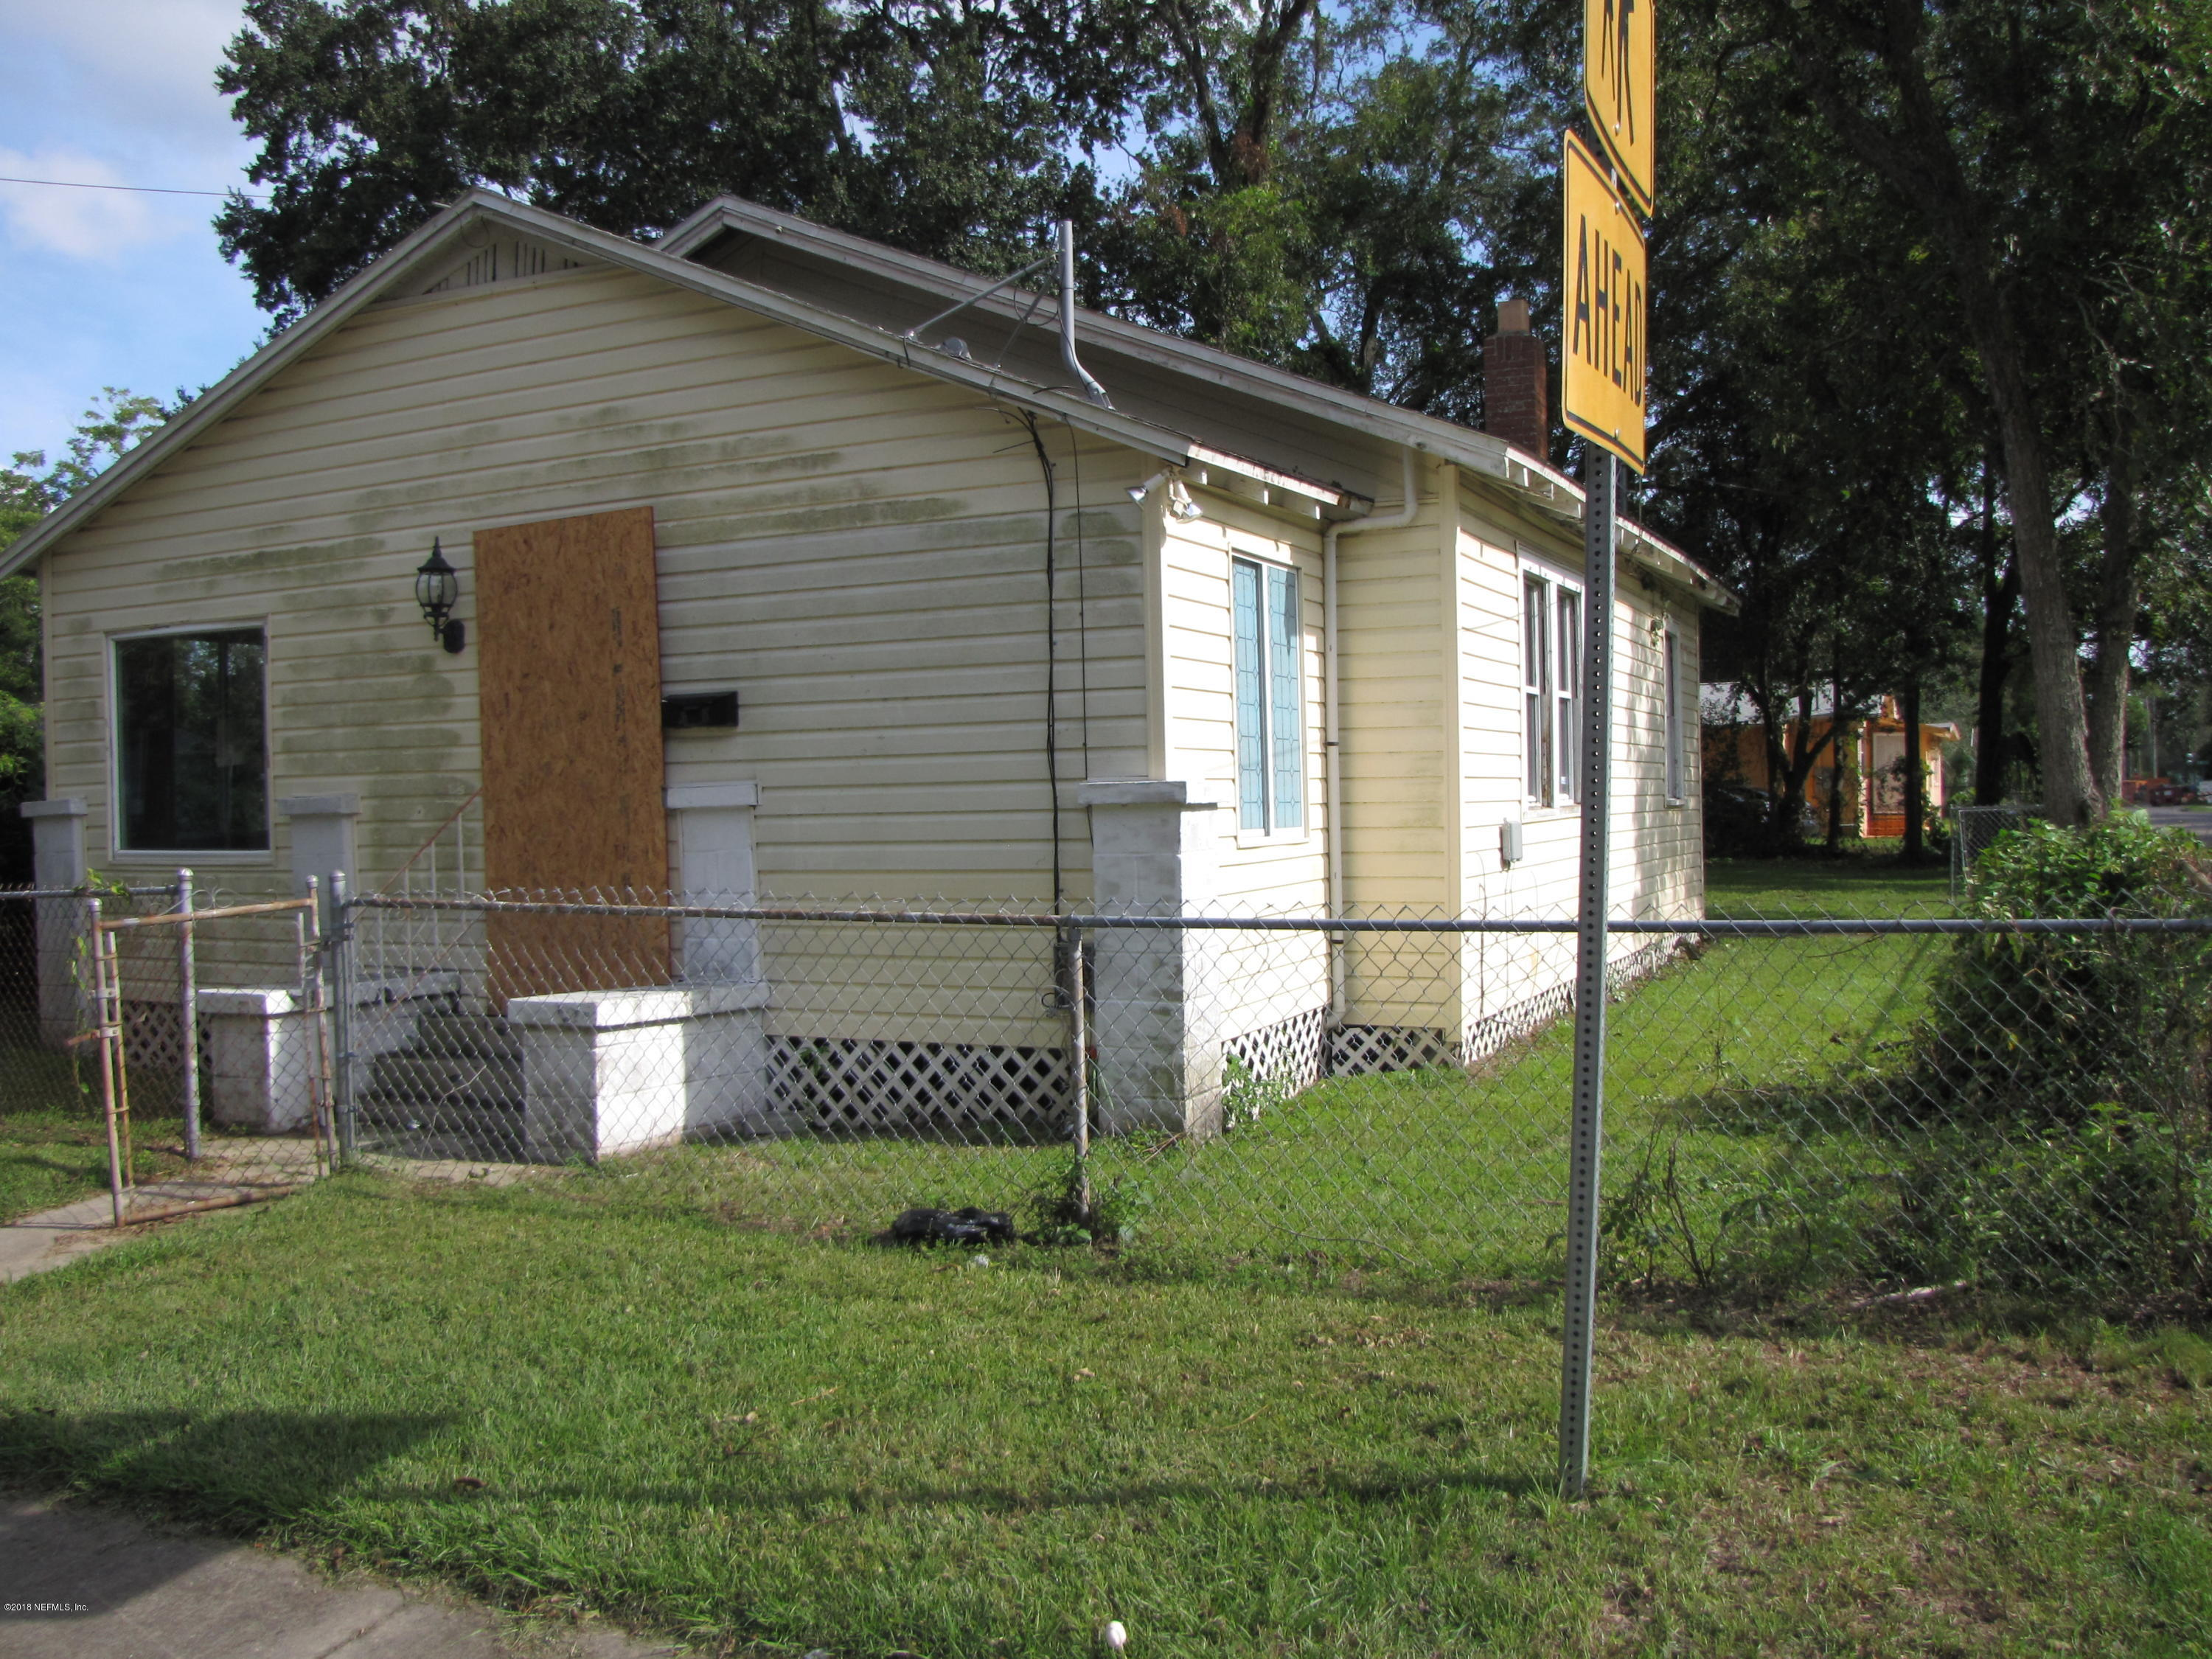 1988 16TH, JACKSONVILLE, FLORIDA 32209, 3 Bedrooms Bedrooms, ,2 BathroomsBathrooms,Residential - single family,For sale,16TH,964735